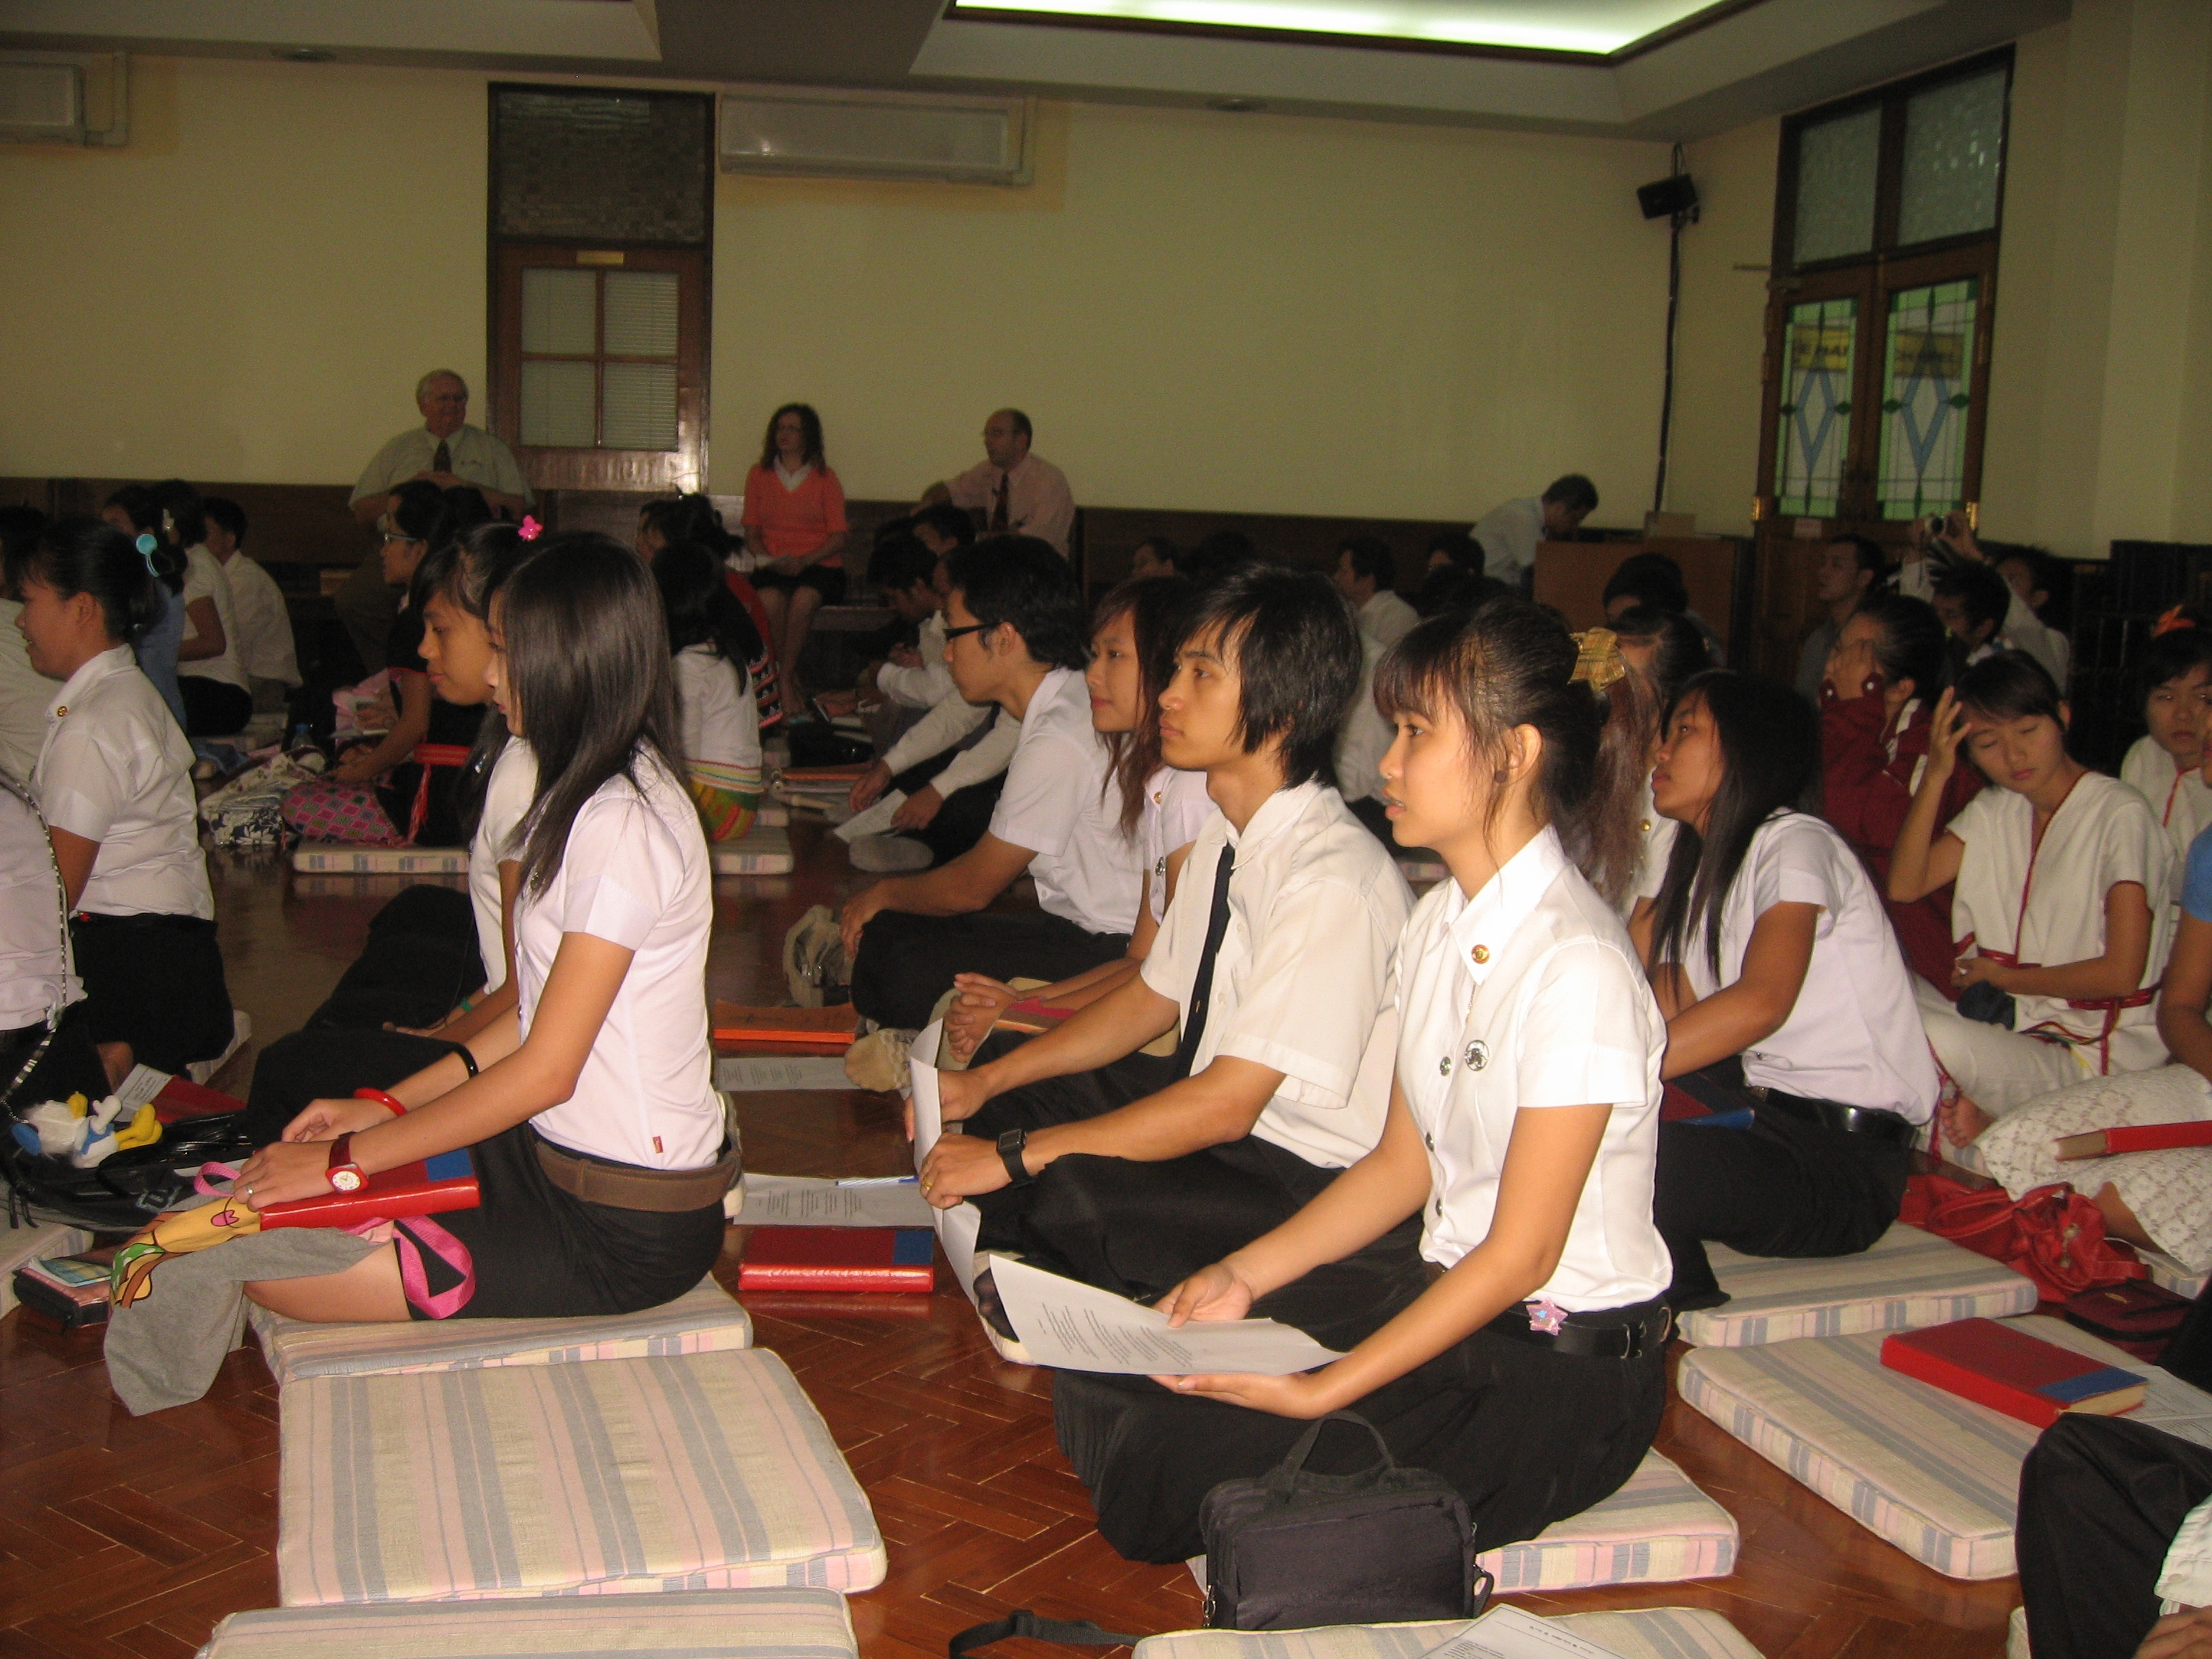 Thailand_Chapel_Service_at_McGilvary_College_of_Divinity.JPG